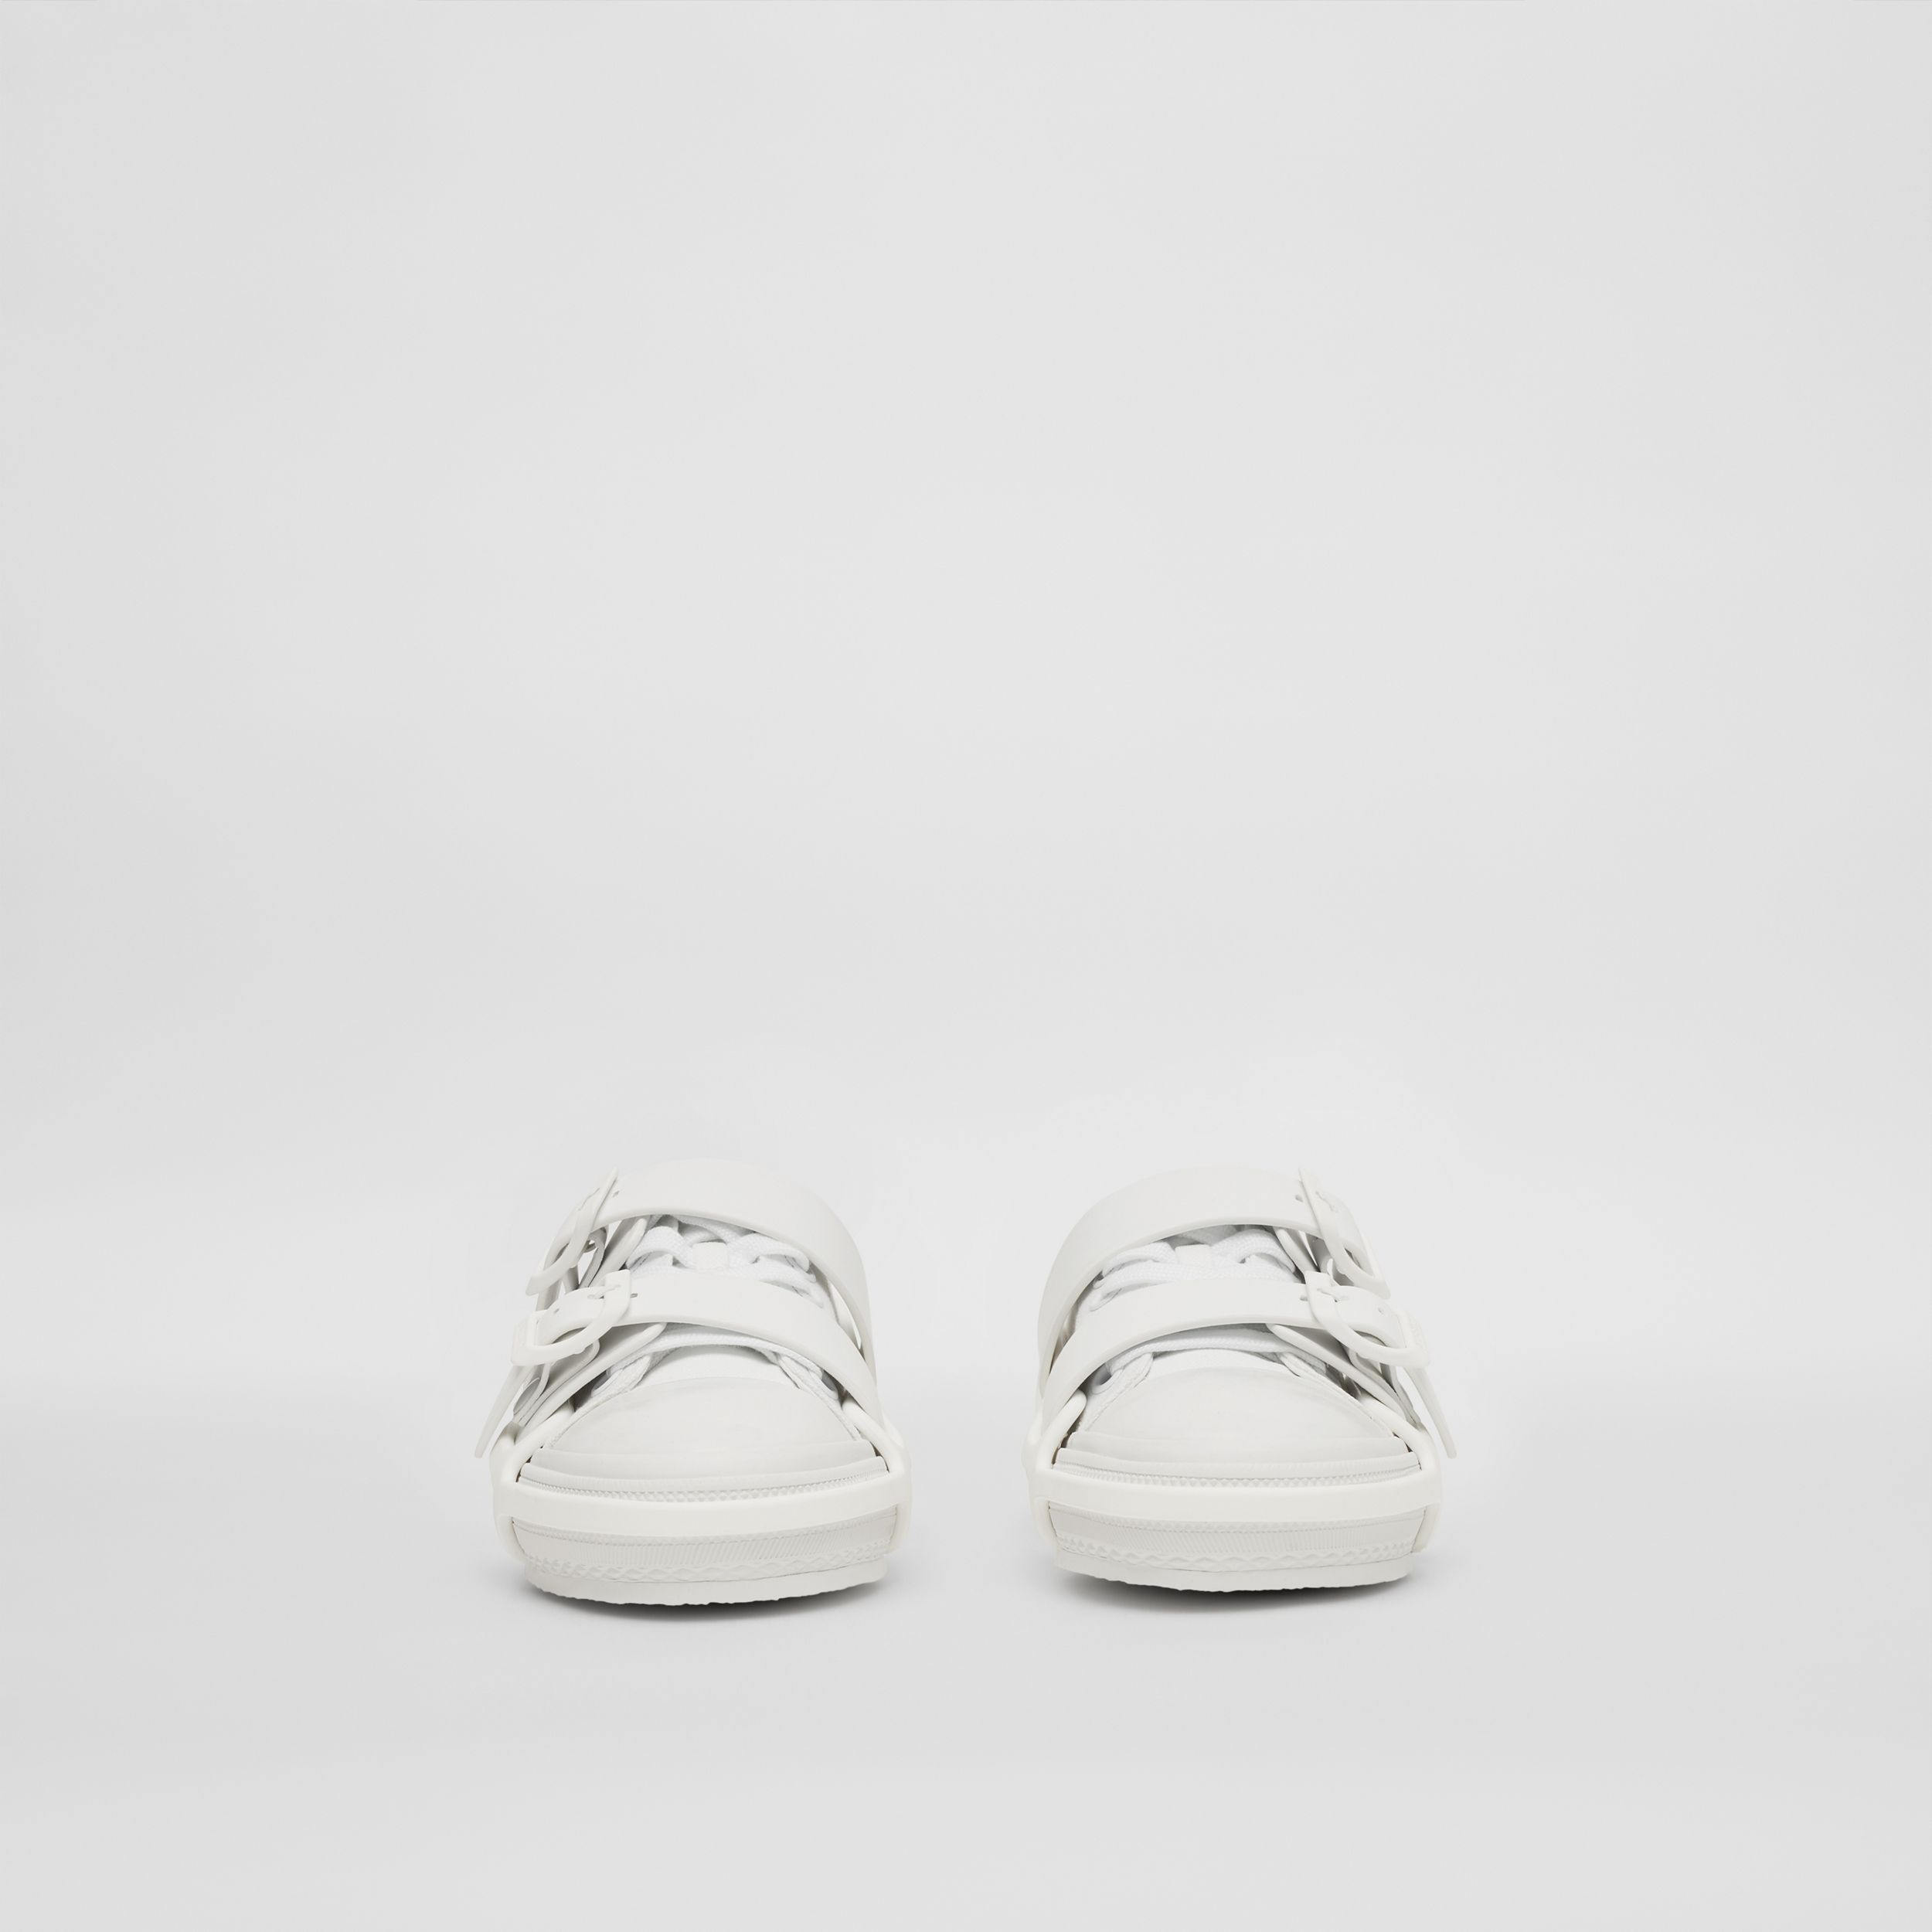 Cotton and Leather Webb Sneakers in White - Women | Burberry Canada - 3